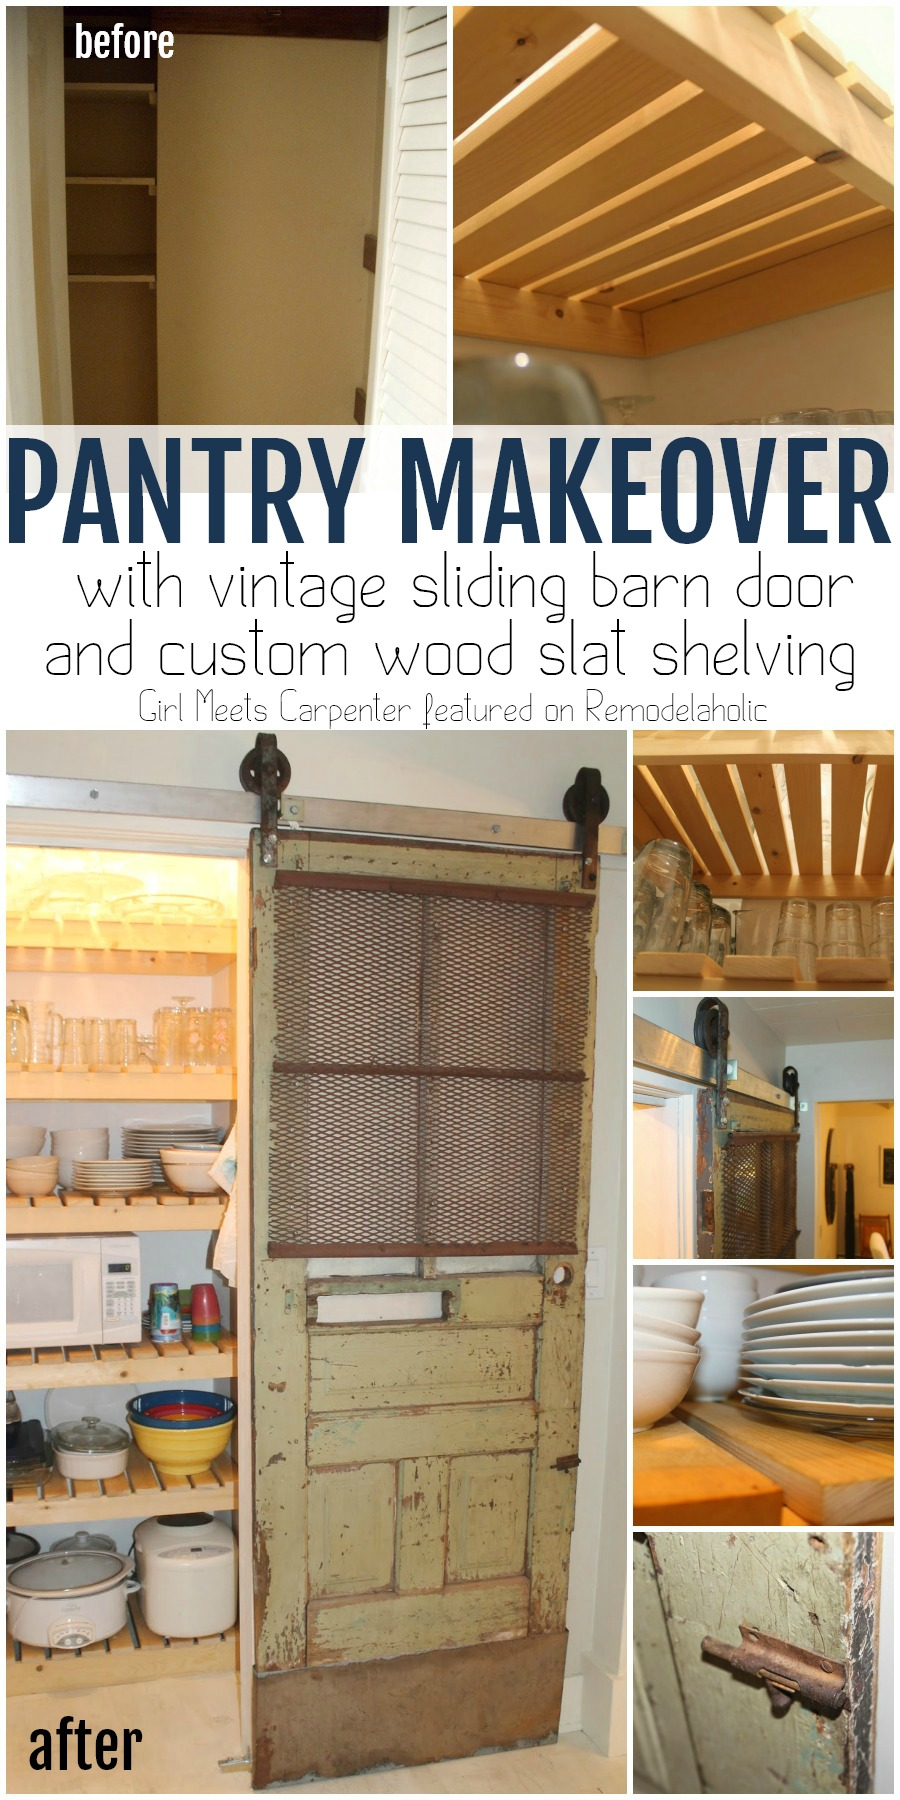 Remodelaholic Sliding Barn Door Pantry Makeover With Wood Slat Shelves